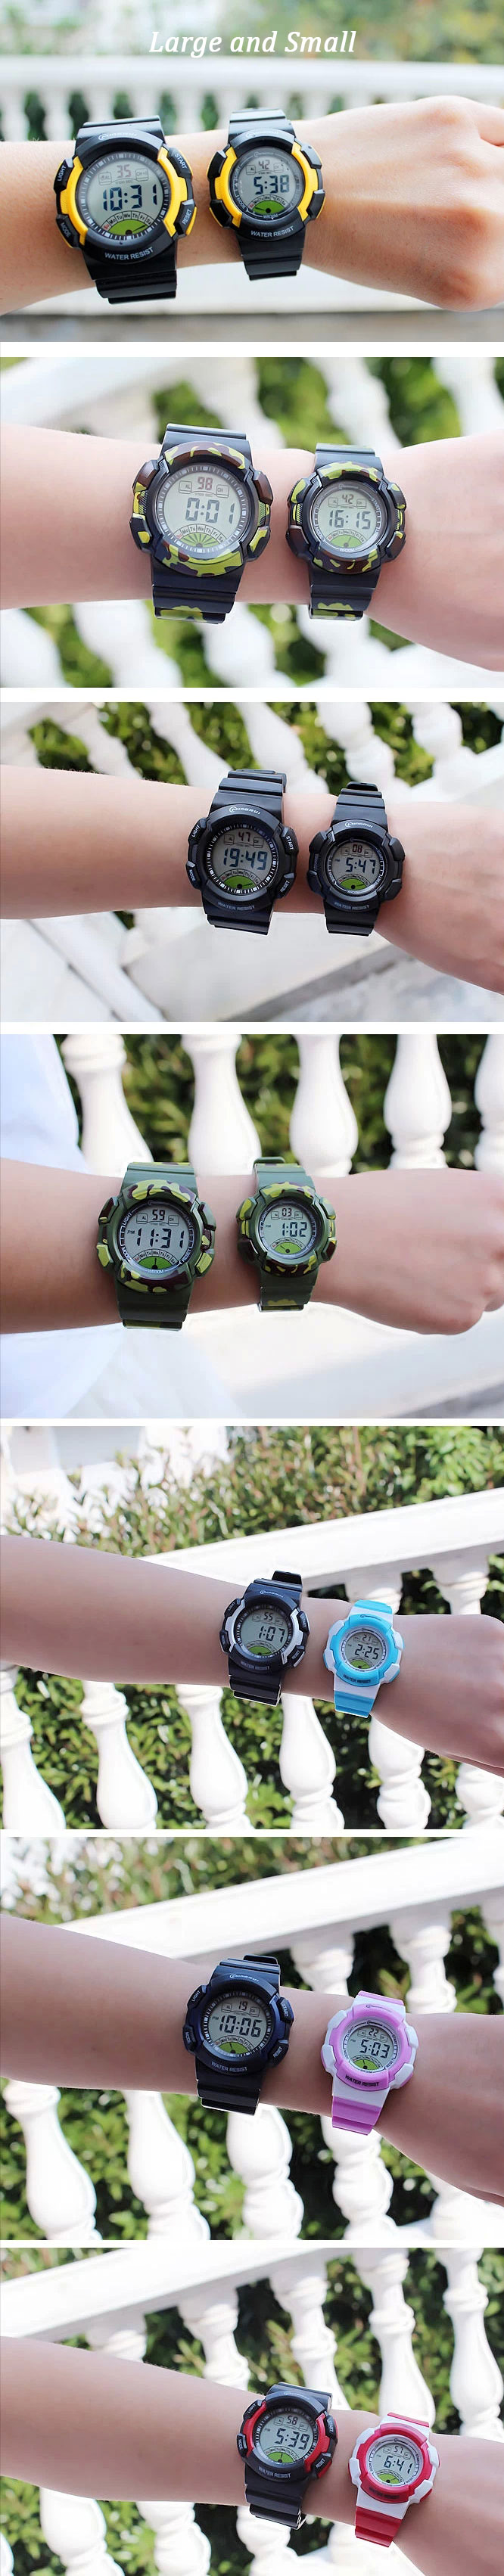 NEW Multifunction Sports Kids gifts Waterproof Electronic Watch large and small